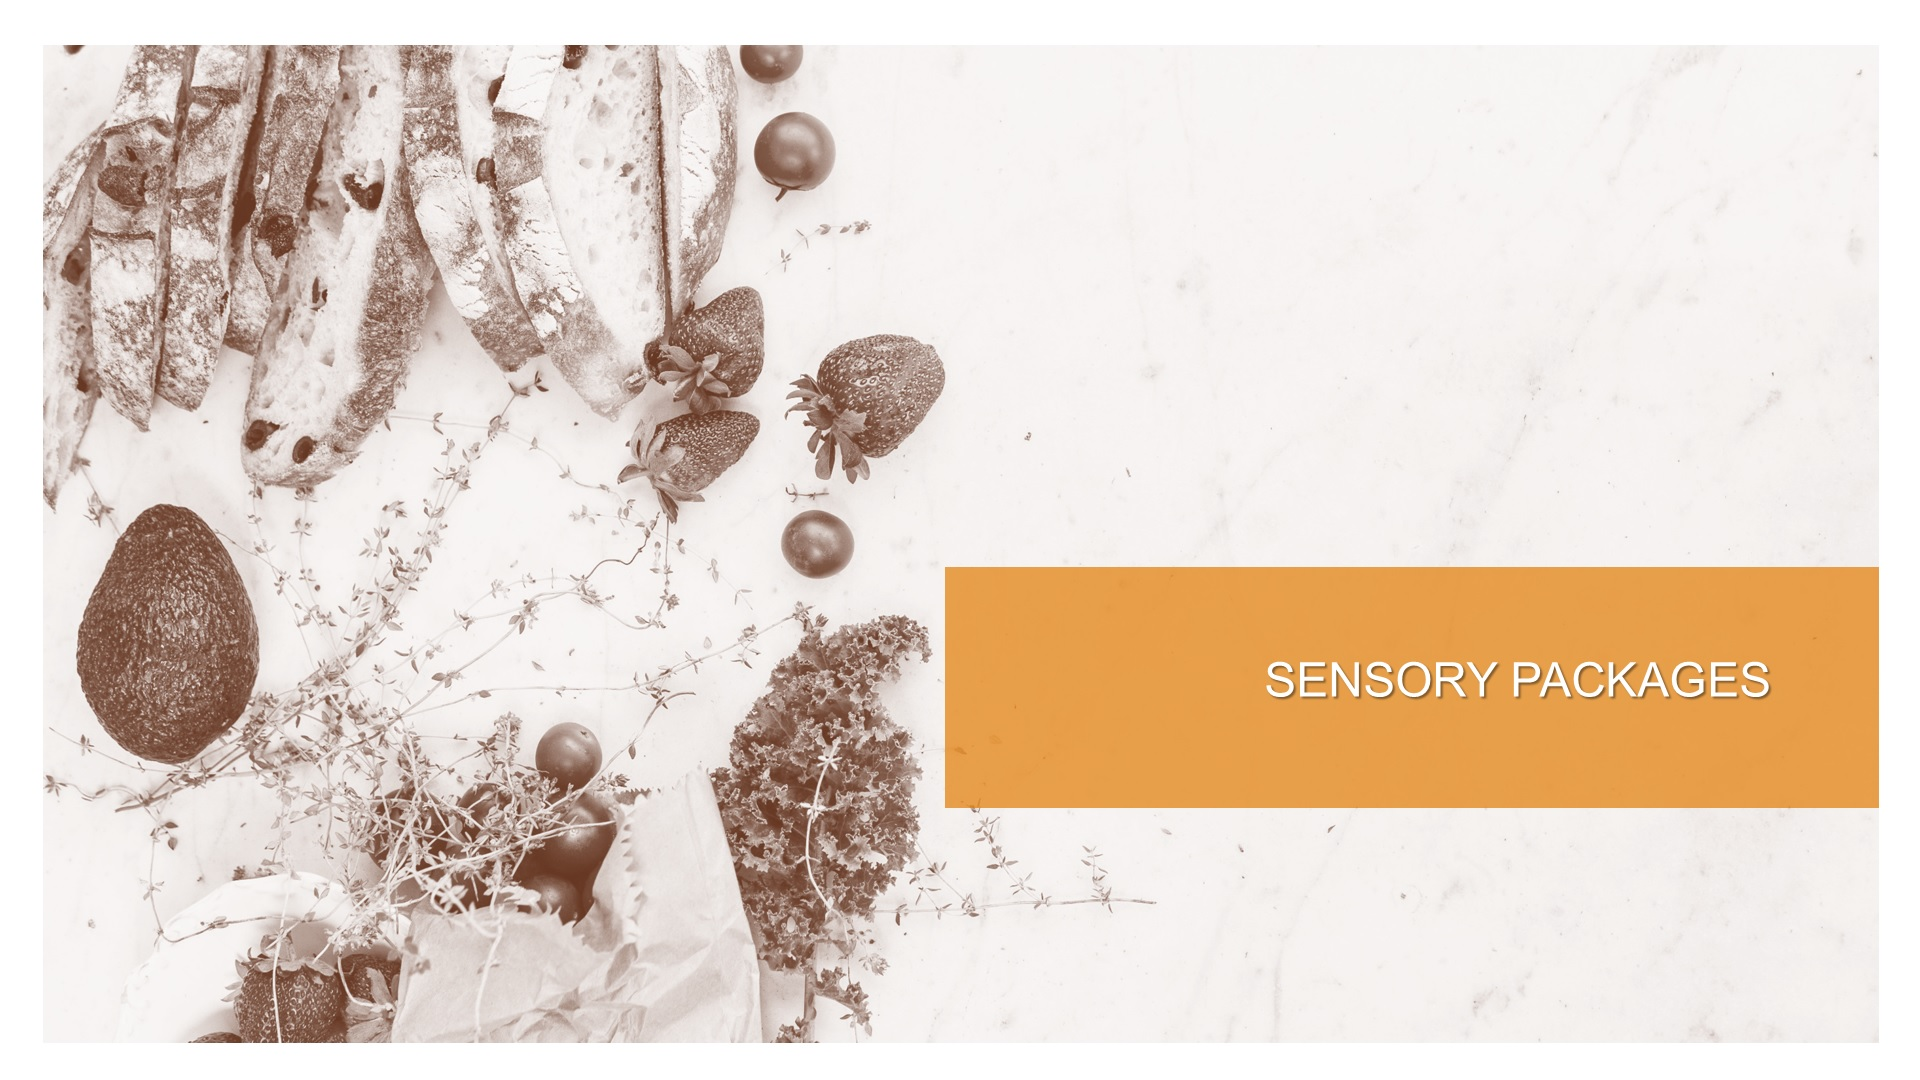 sensory packages